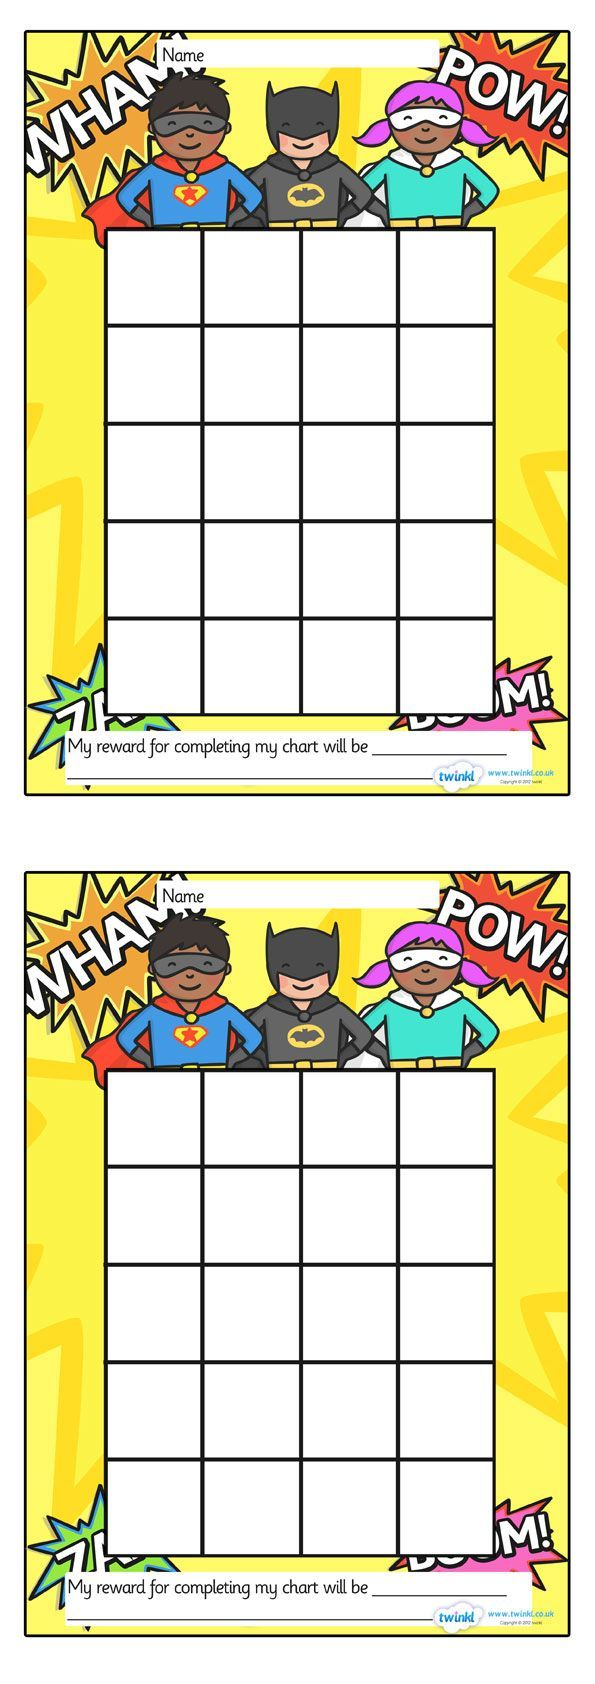 Best 25 Sticker chart ideas – Progress Chart for Kids